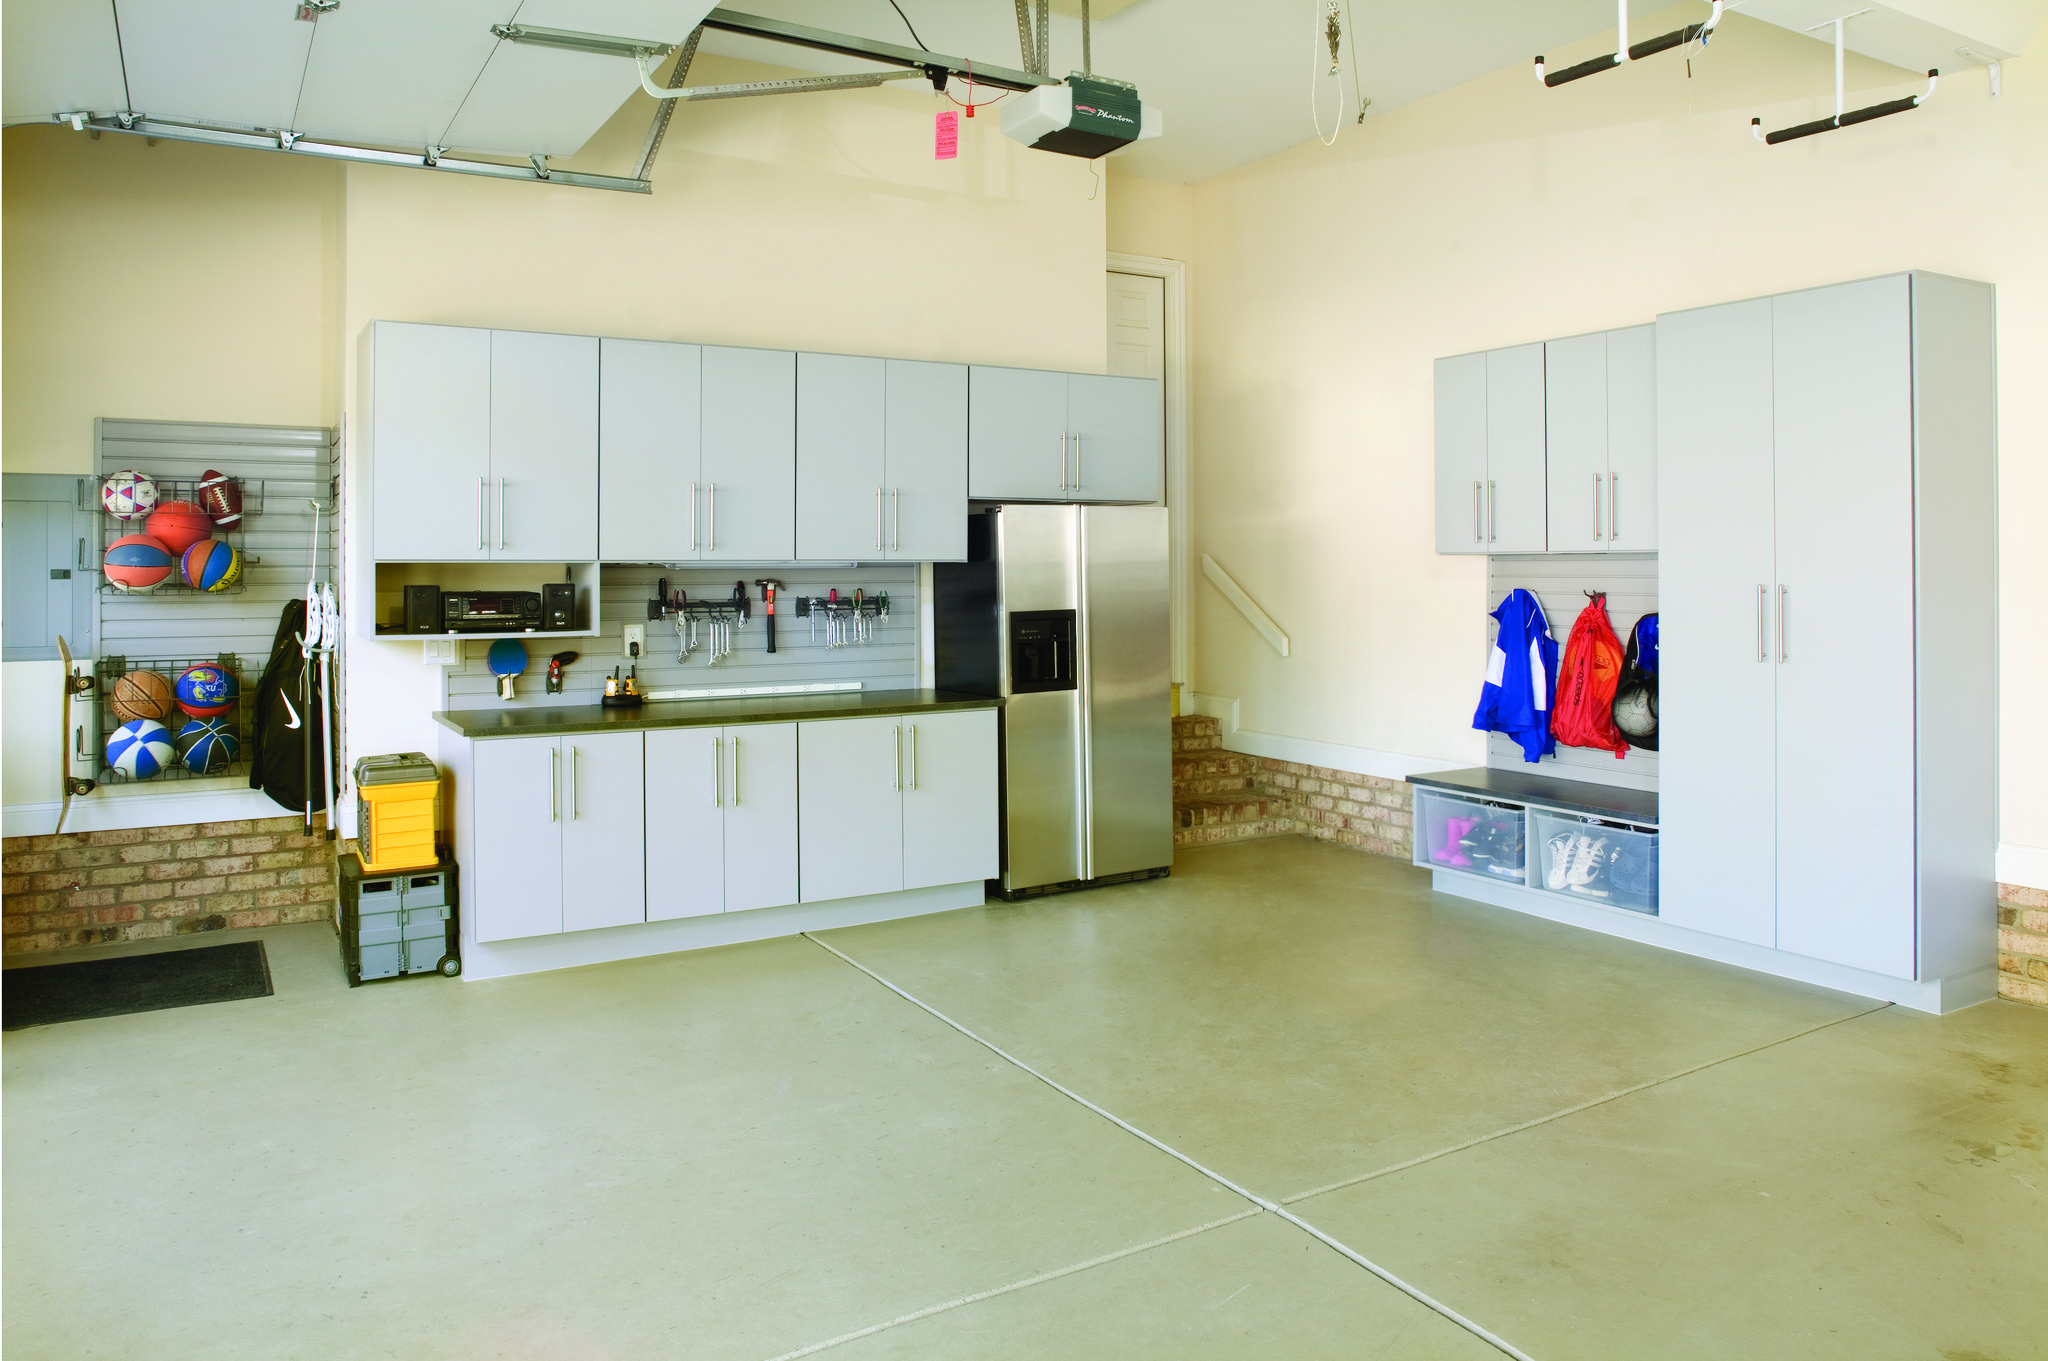 garage organization tips las vegas and henderson, nevada